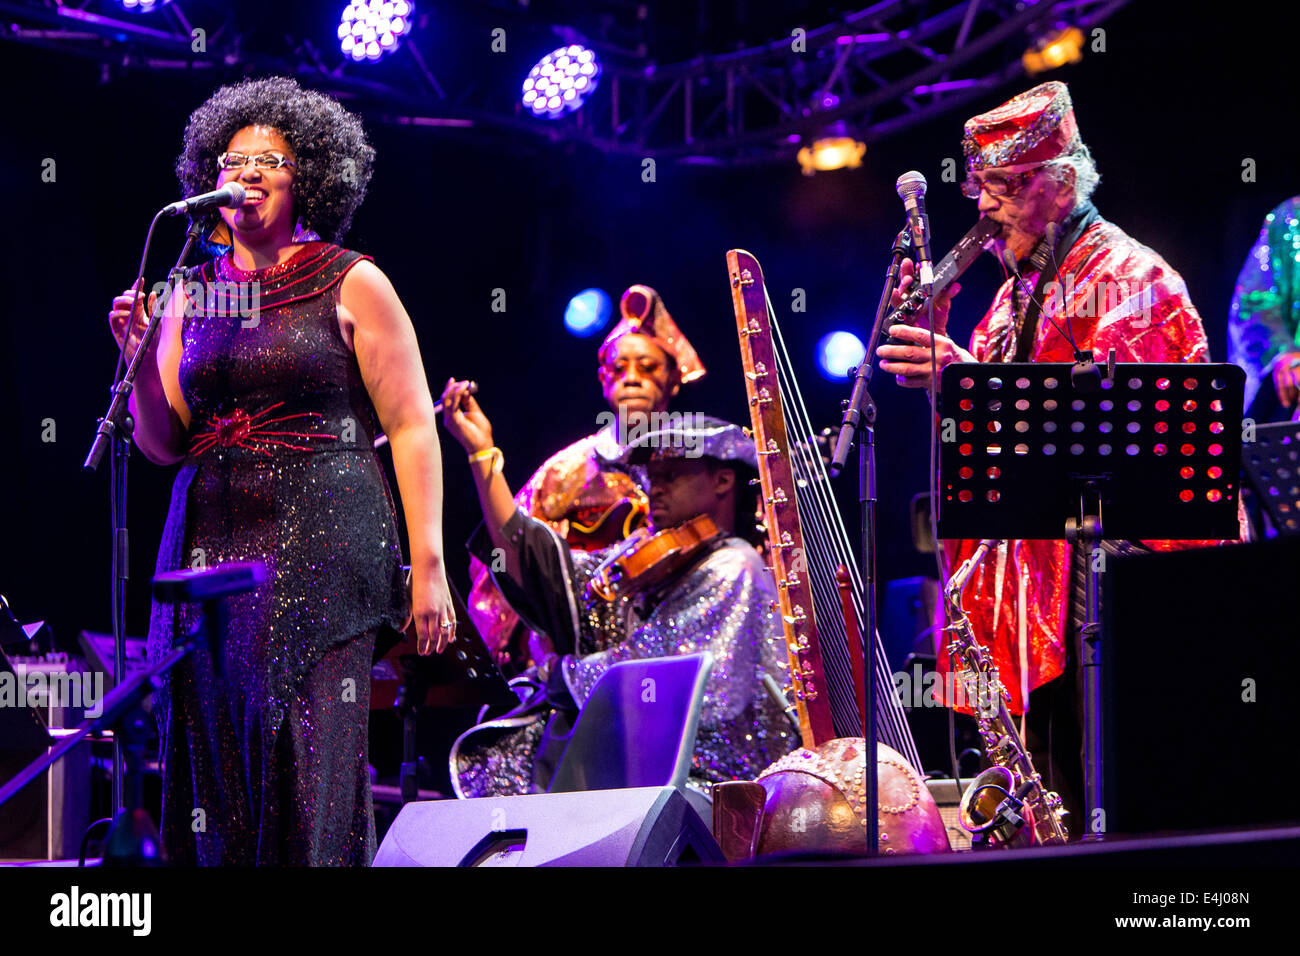 Lugano Switzerland. 11th July 2014. The American jazz band SUN RA CENTENNIAL DREAM ARKESTRA performs live at Piazza - Stock Image